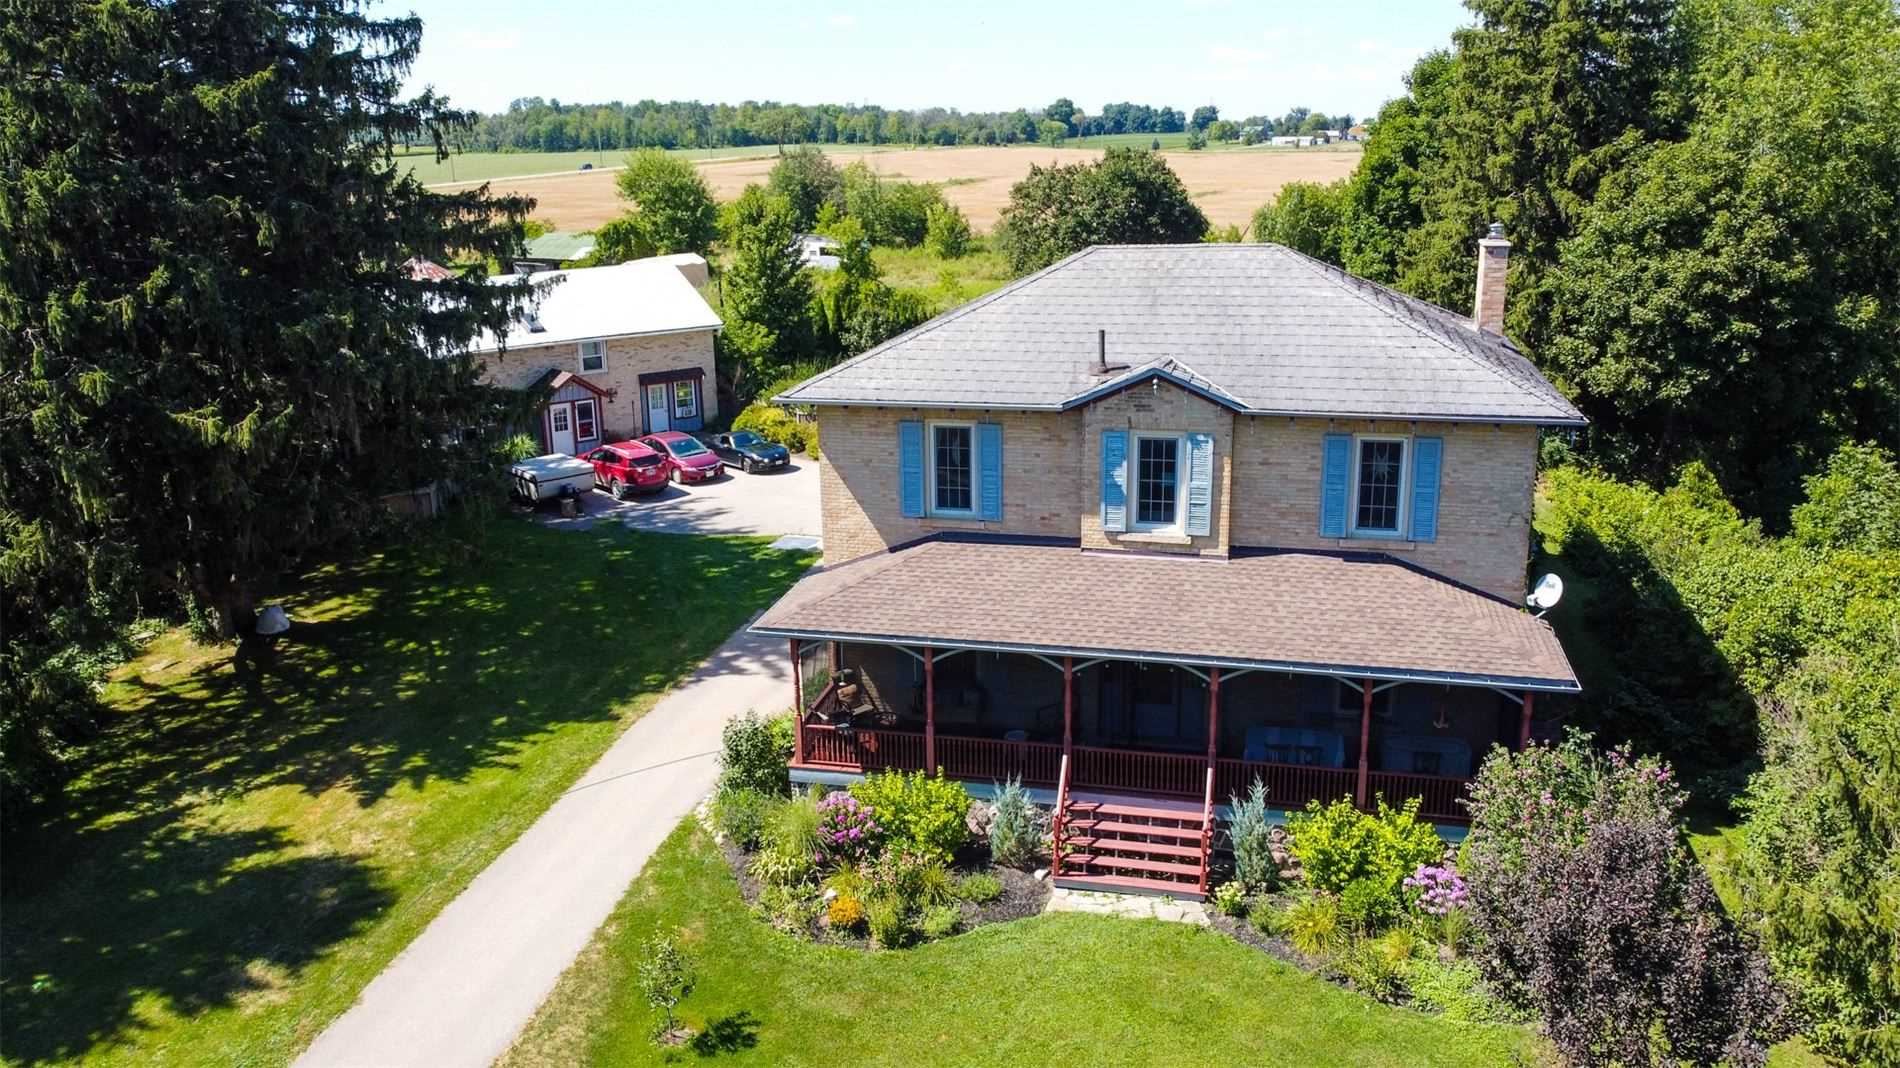 pictures of house for sale MLS: X4874501 located at 3542 Huron Rd, Wilmot N3A3C9